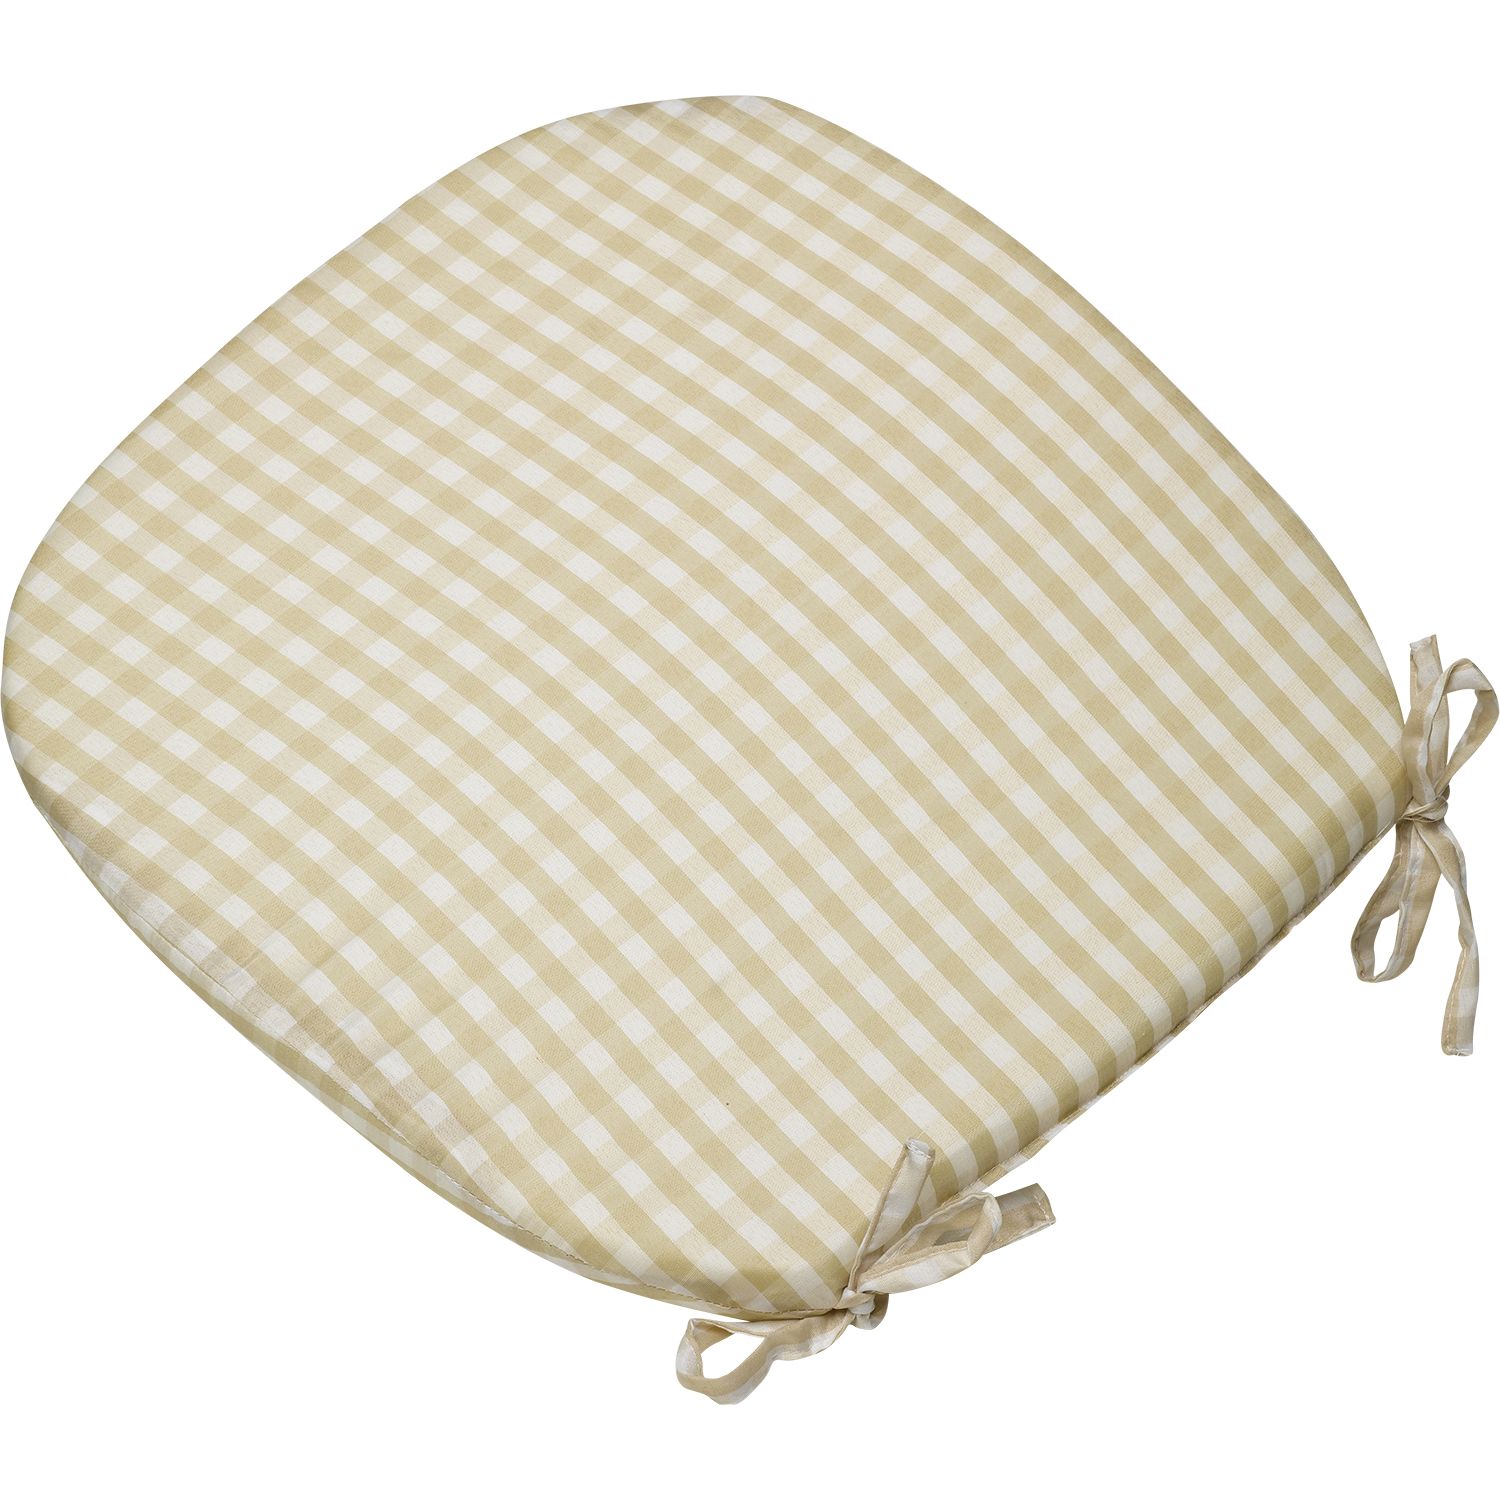 Outdoor dining chair cushions - Gingham Check Tie On Seat Pad 16 034